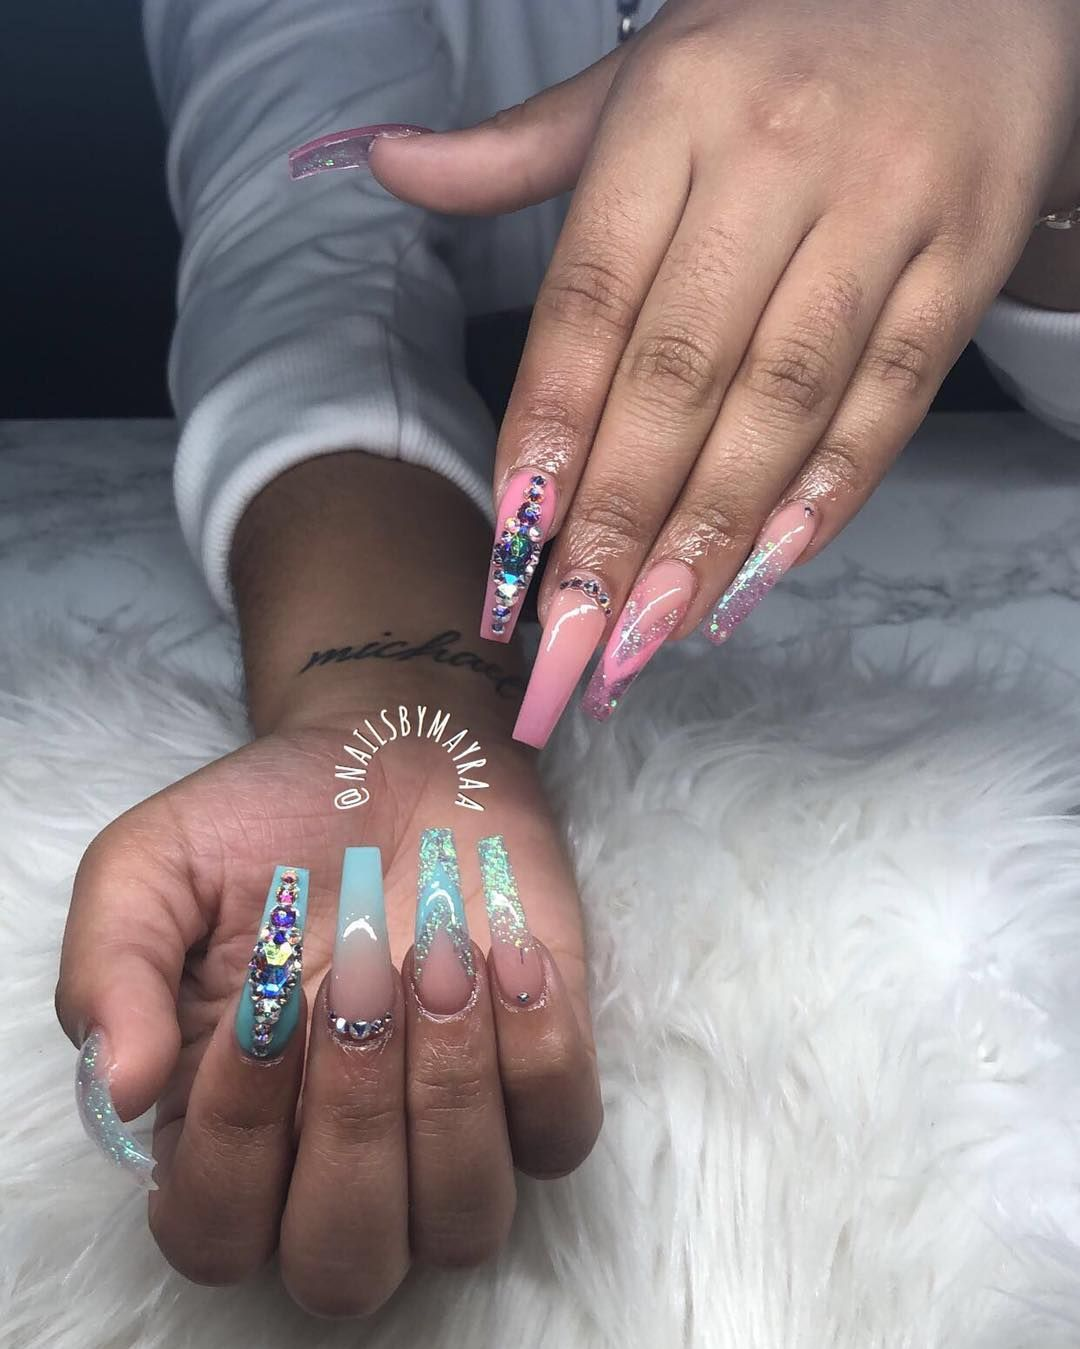 Pinterest Theleximariexo Gender Reveal Nails Long Acrylic Nails Nails